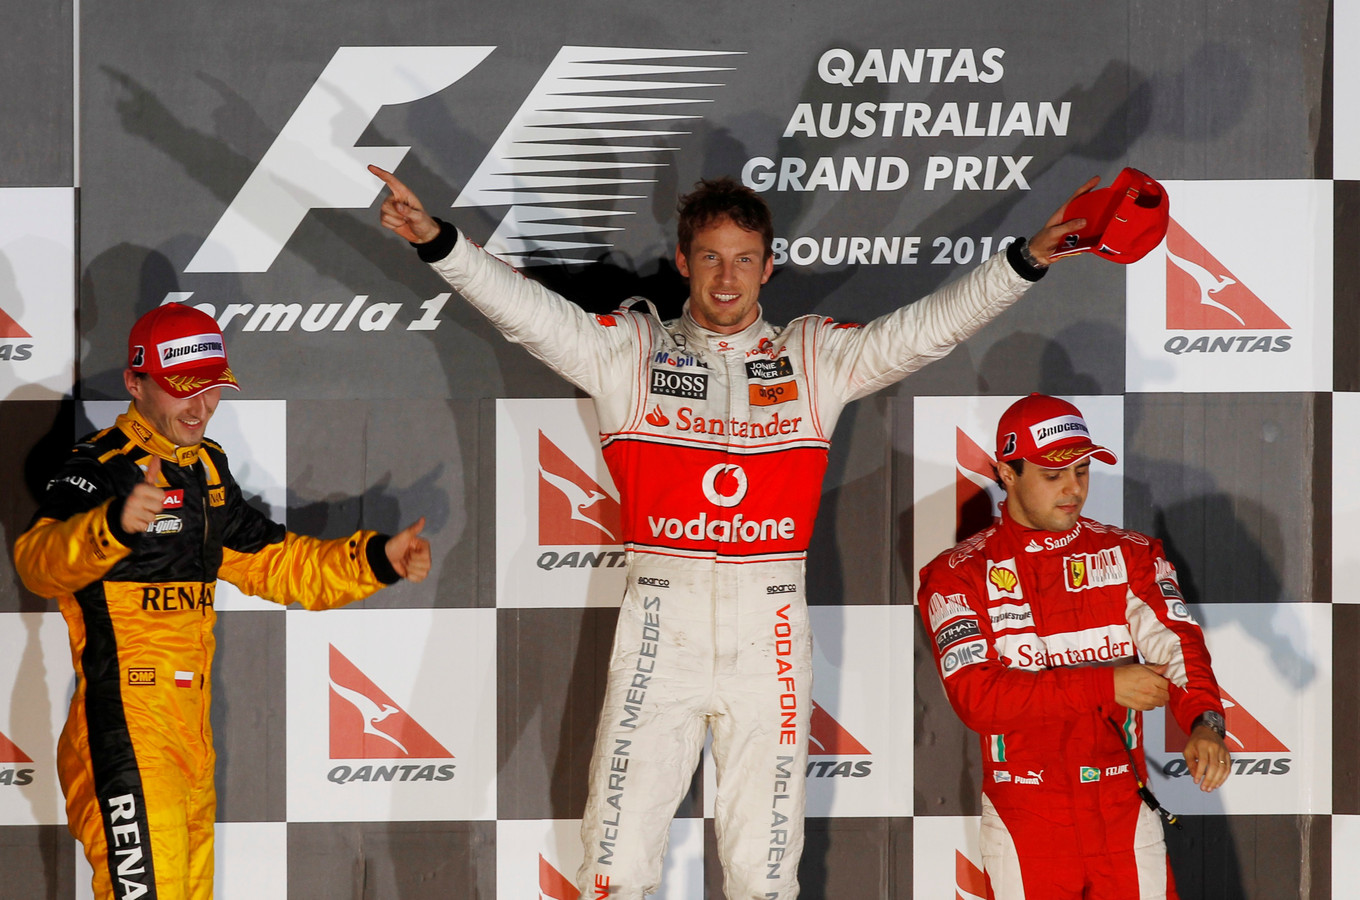 Jenson Button won in 2009 de Formule 1.